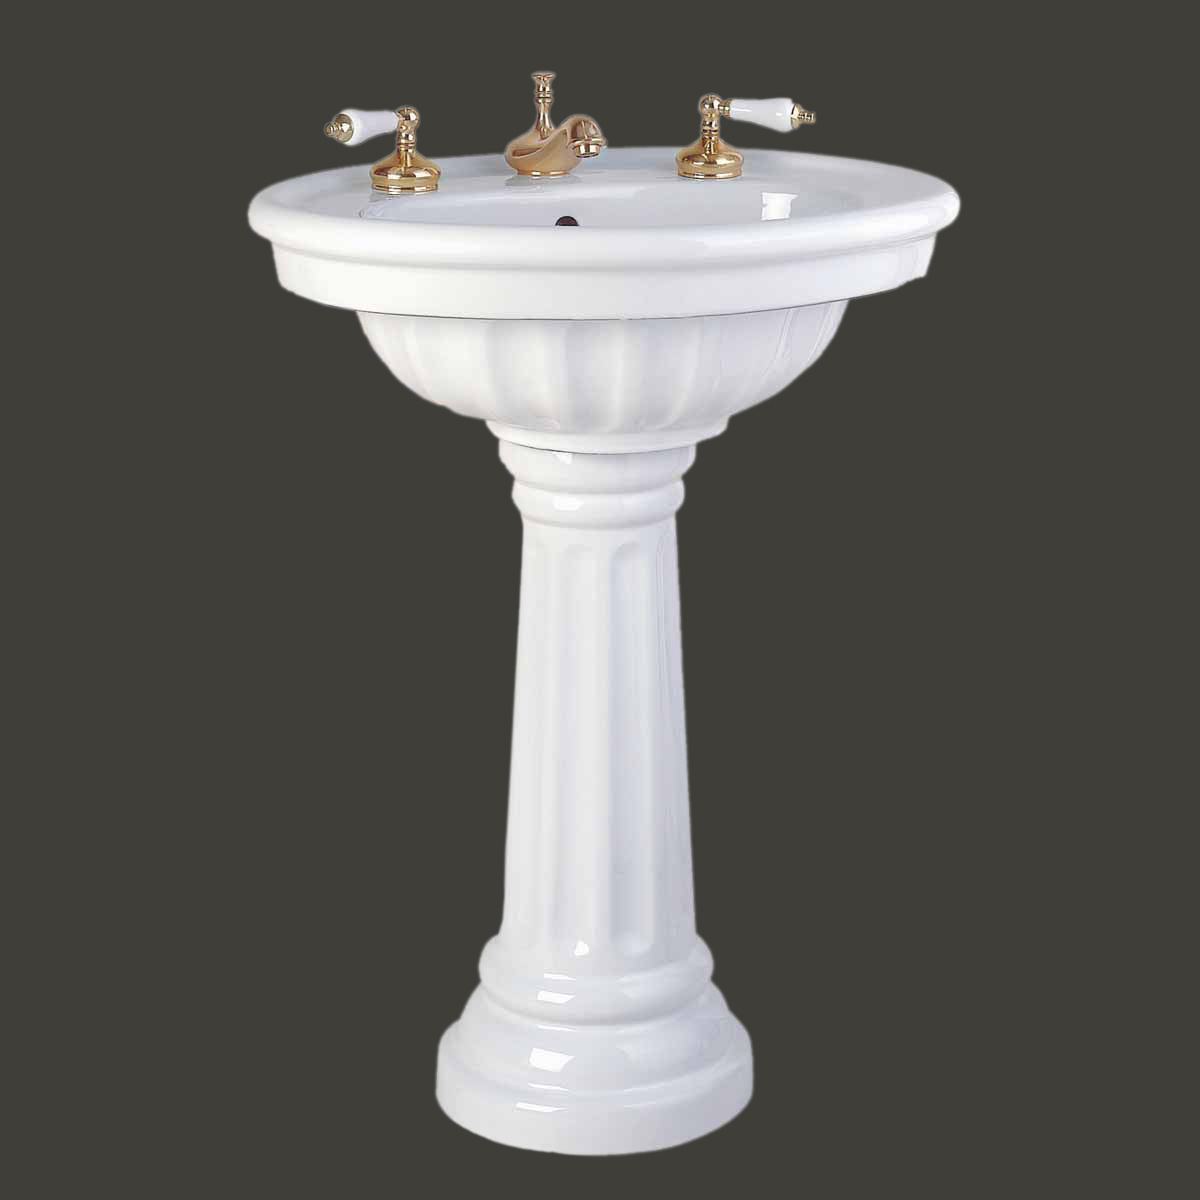 Images of bathrooms with pedestal sinks